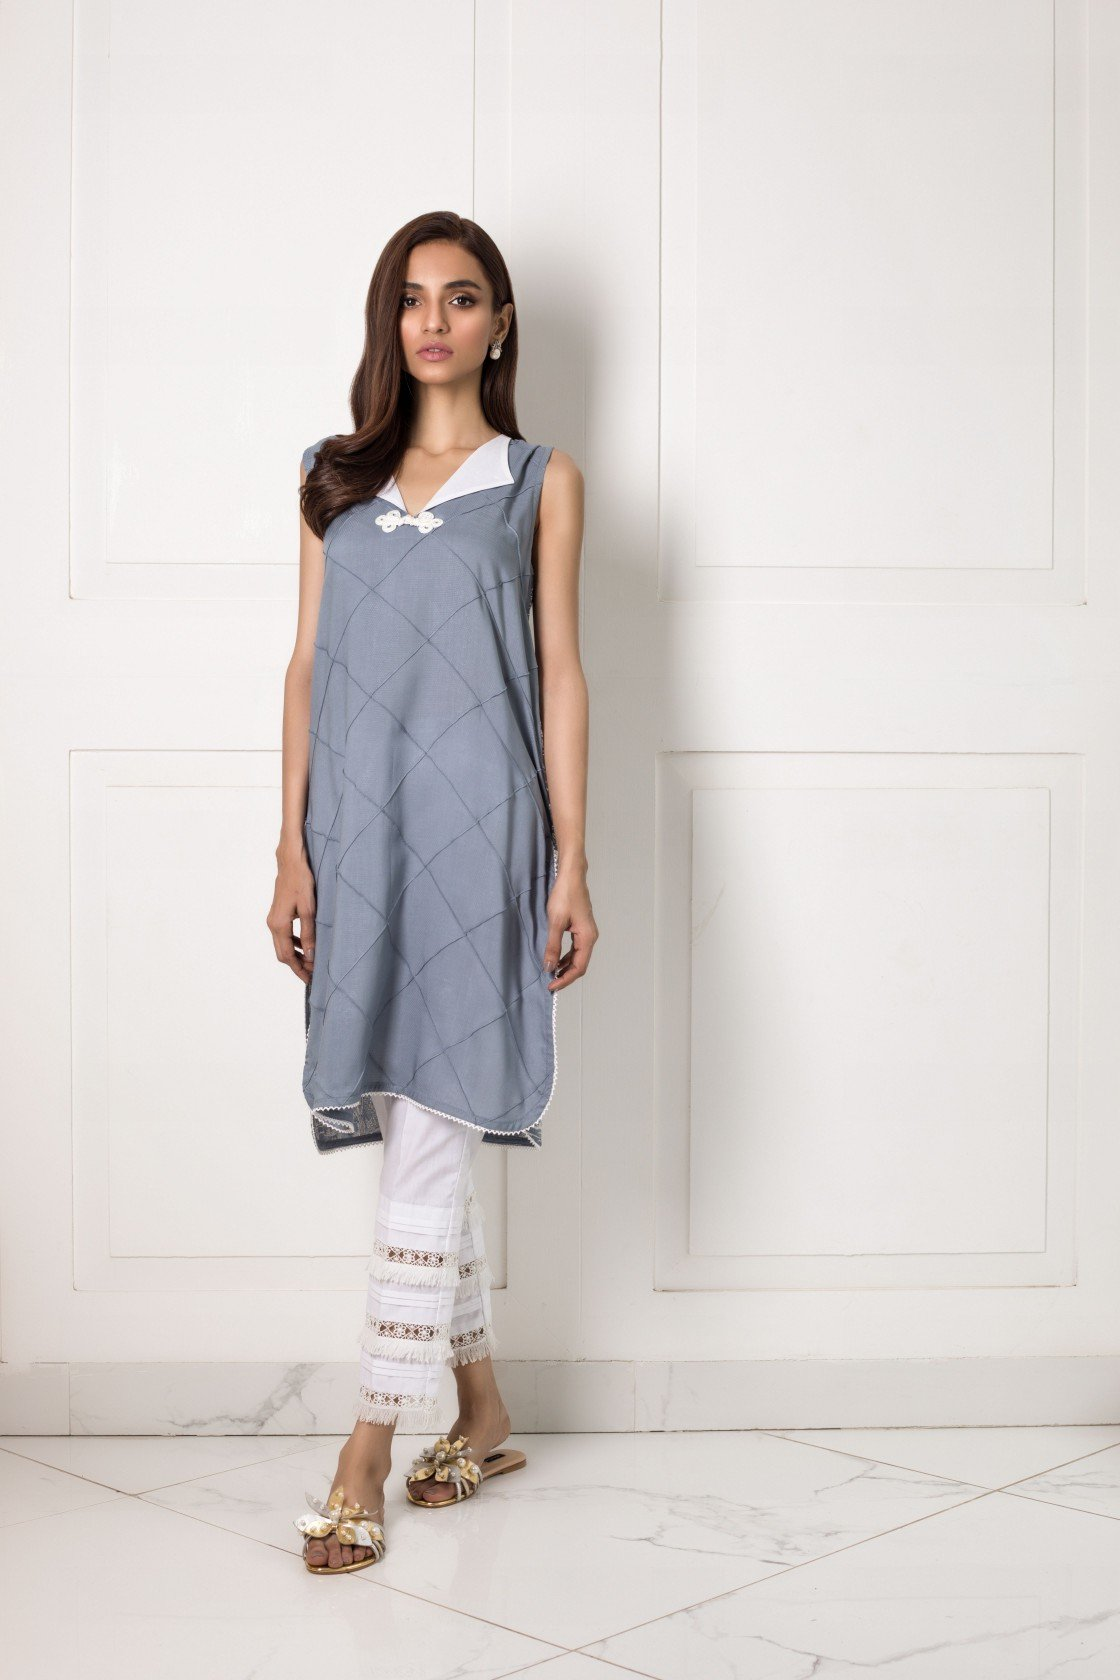 Shehrnaz- -Grey Shirt With Embroidered Back